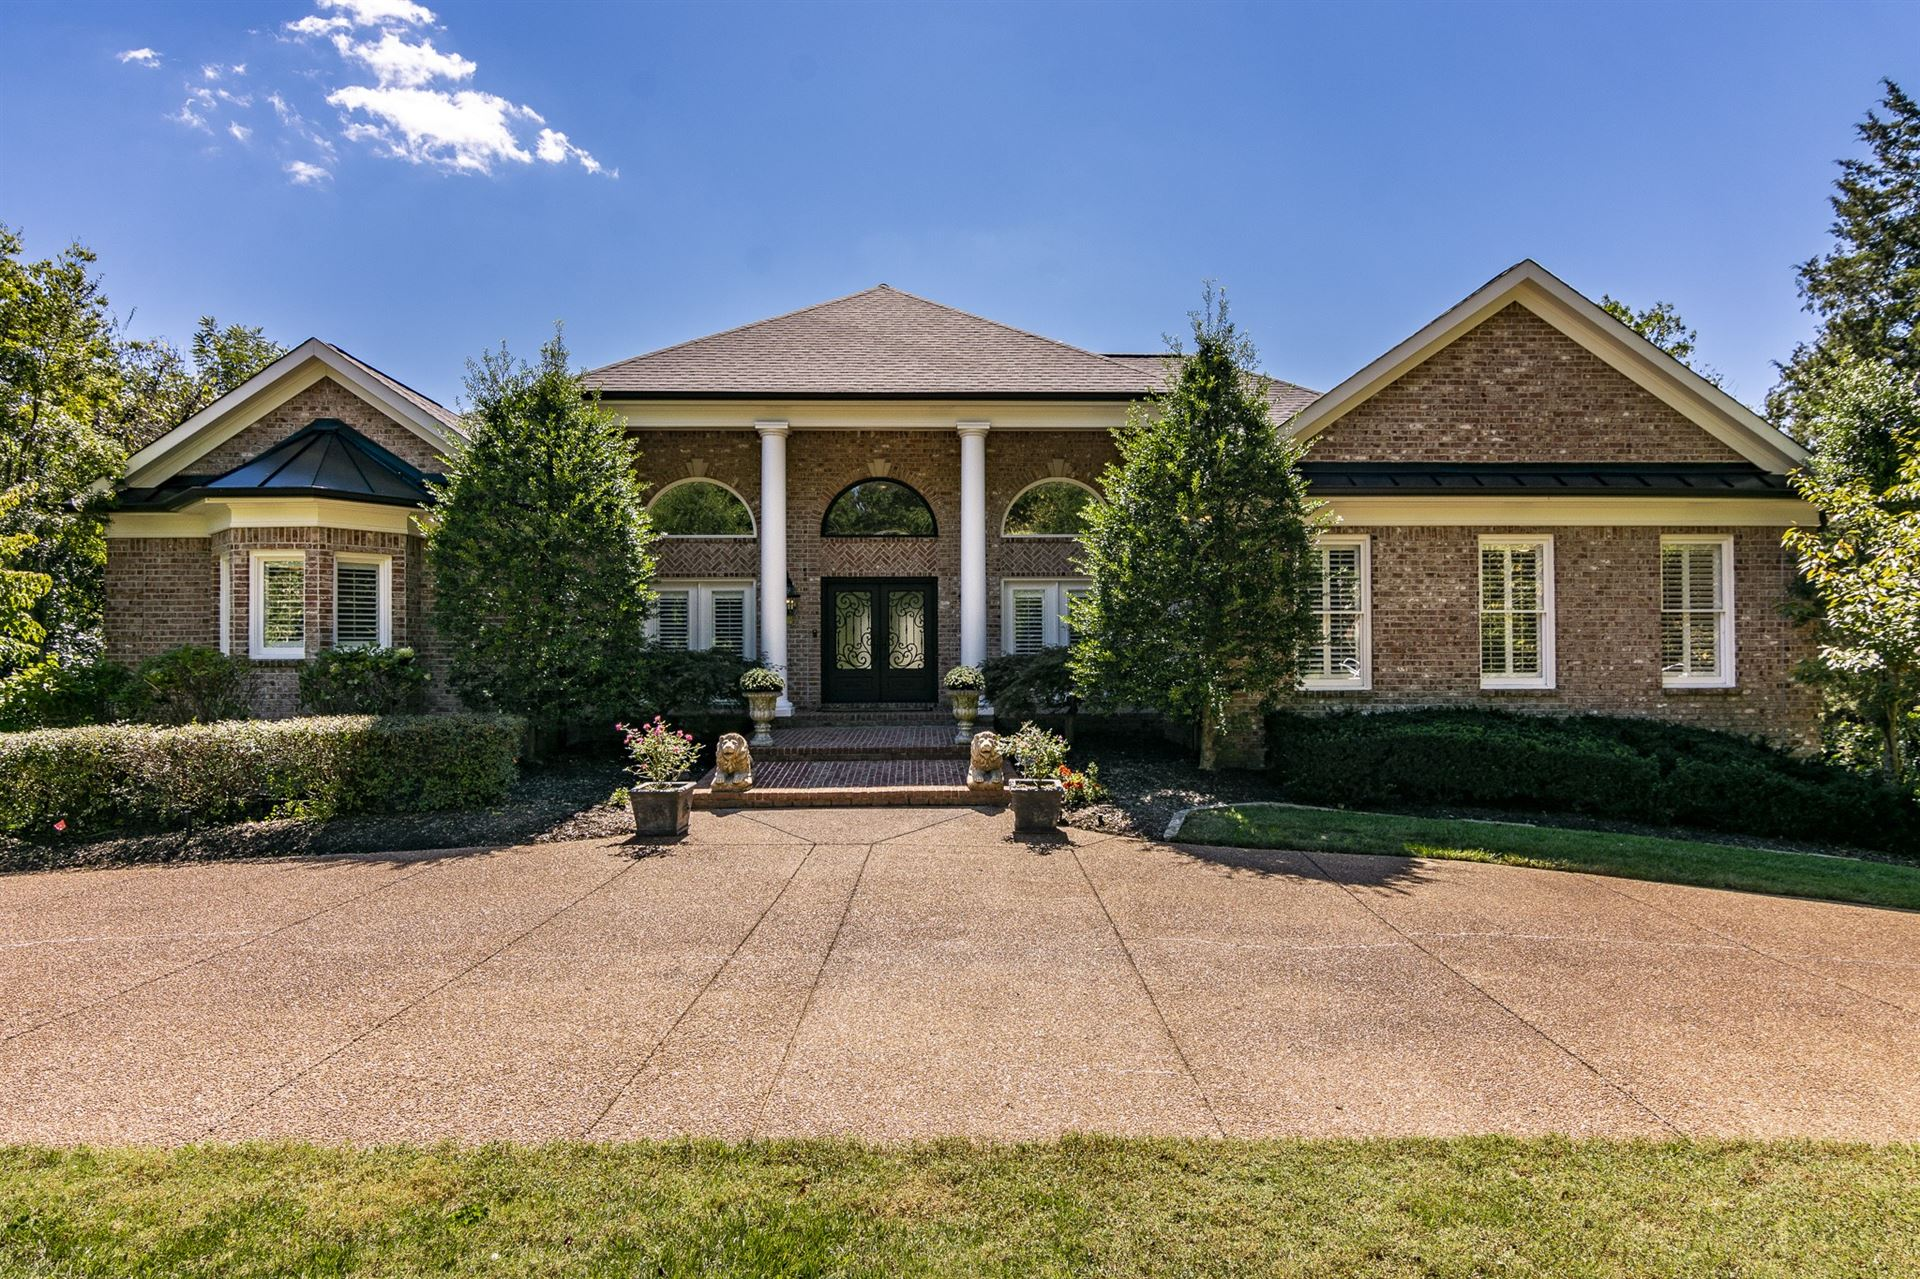 Photo of 9461 Winston Dr, Brentwood, TN 37027 (MLS # 2292413)